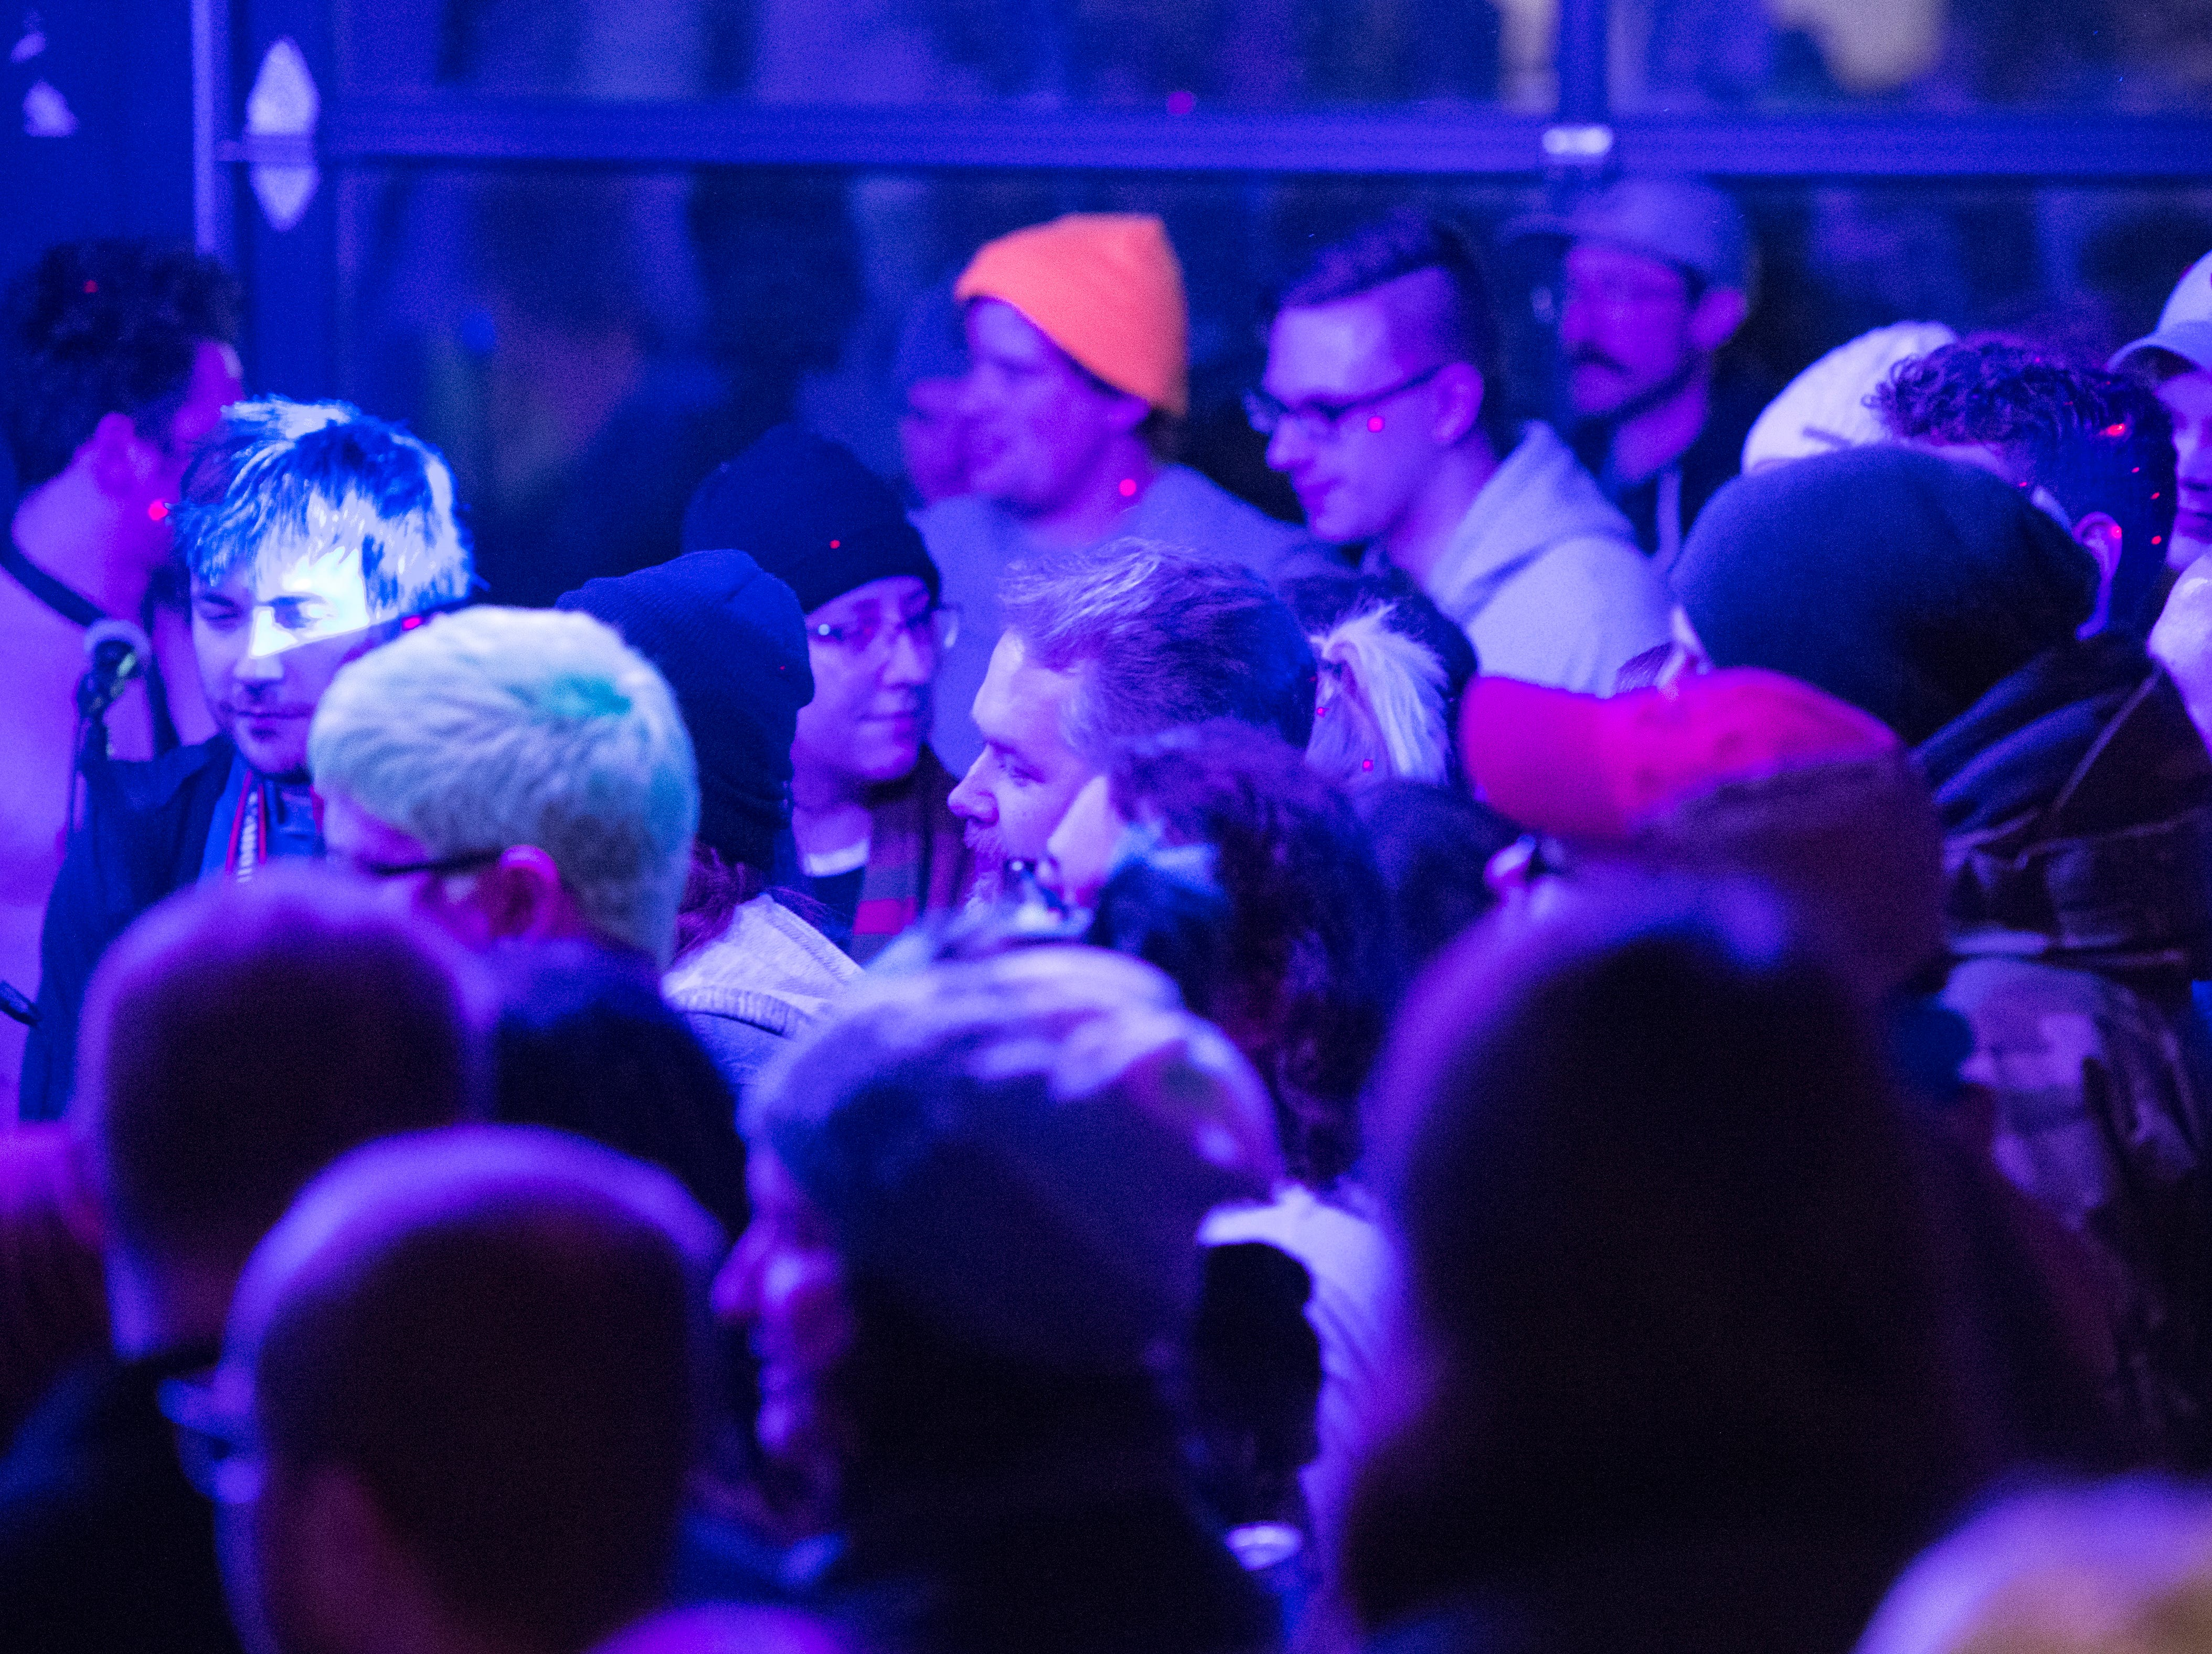 """People pack the back room during the Farewell PG Weekend show Saturday, Dec. 29, 2018. PG -- a cafe, art and music venue -- opened March 15, 2013, and has served as a gathering place for the creative community in Evansville. """"We always survive,"""" said owner Todd Elkshow Huber. Their final day open is Monday, Dec. 31, 2018."""